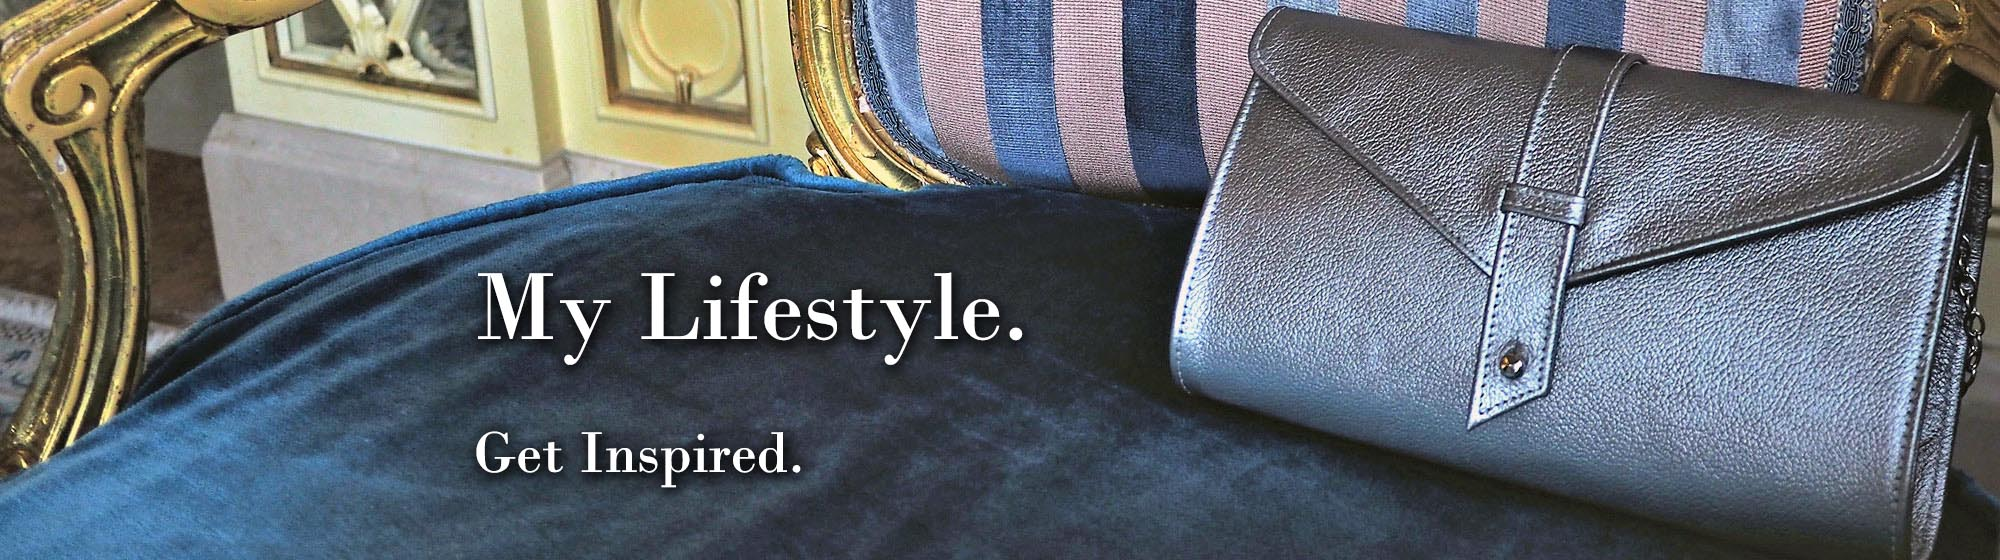 My-lifestyle-get-inspired-banner